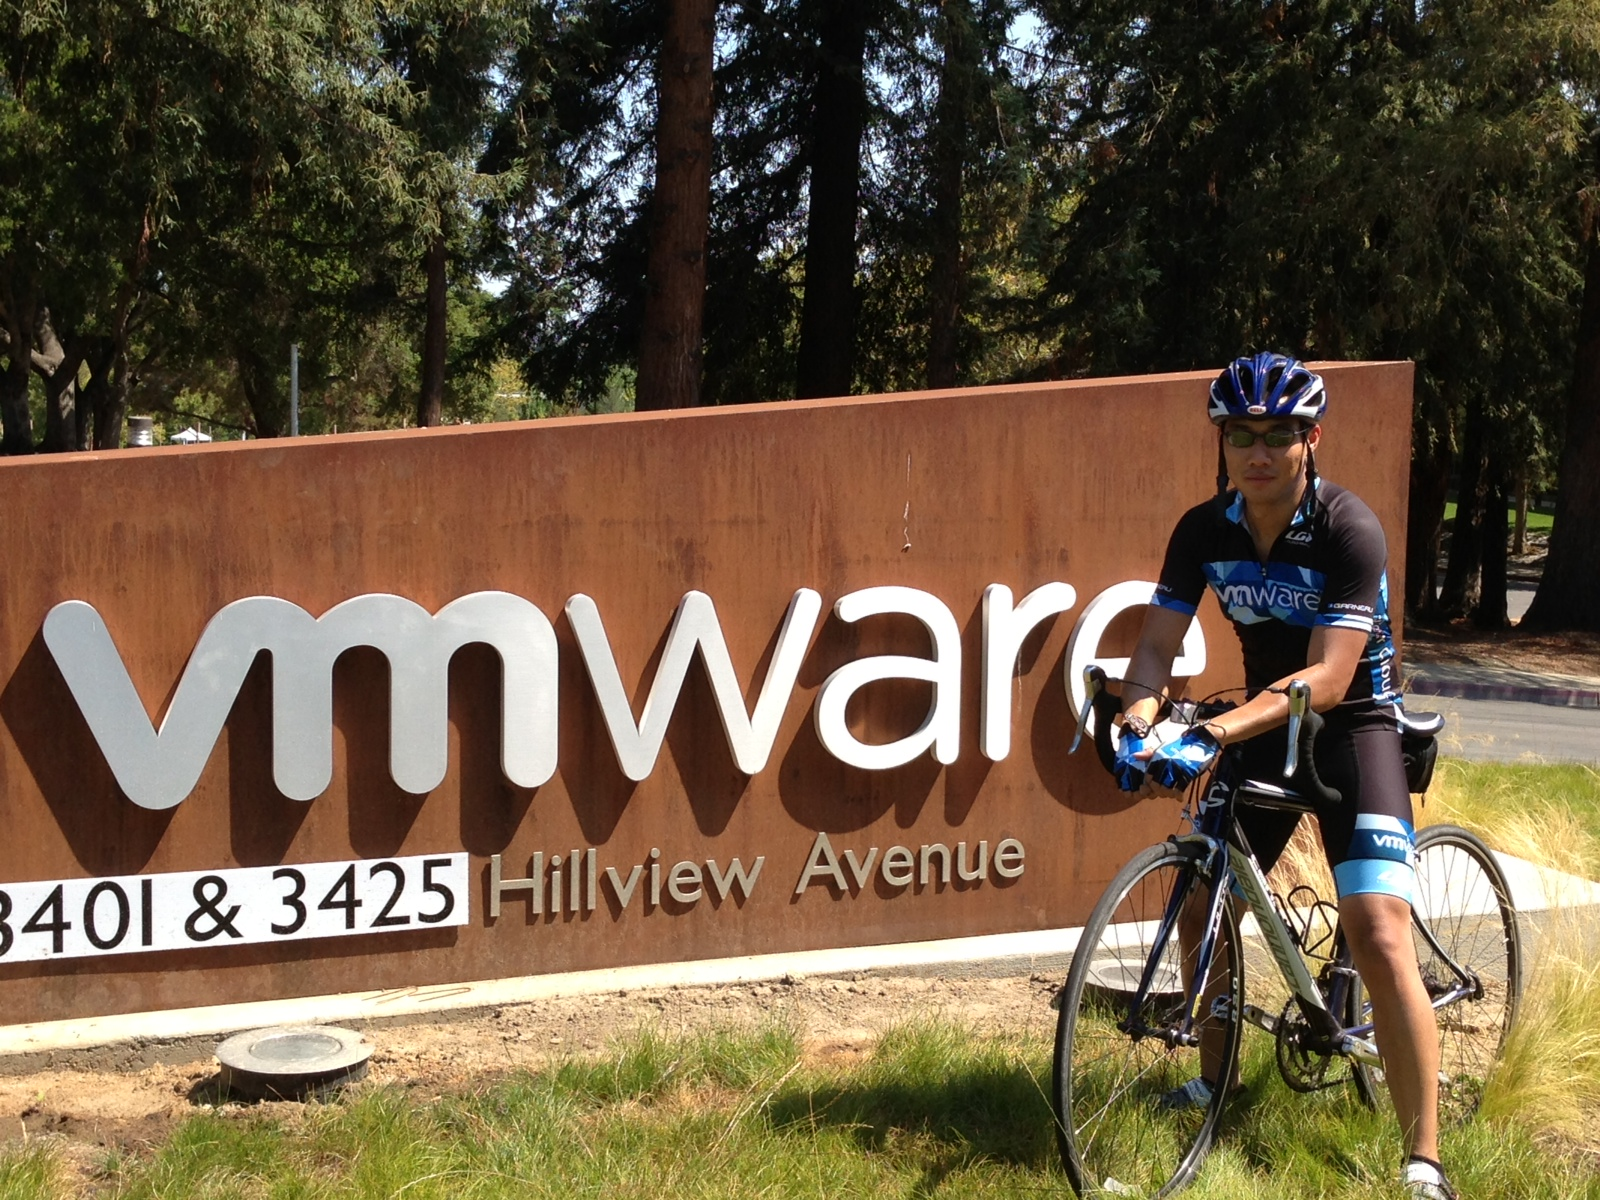 VMware Build-A-Bike Team Activity in Palo Alto, CA